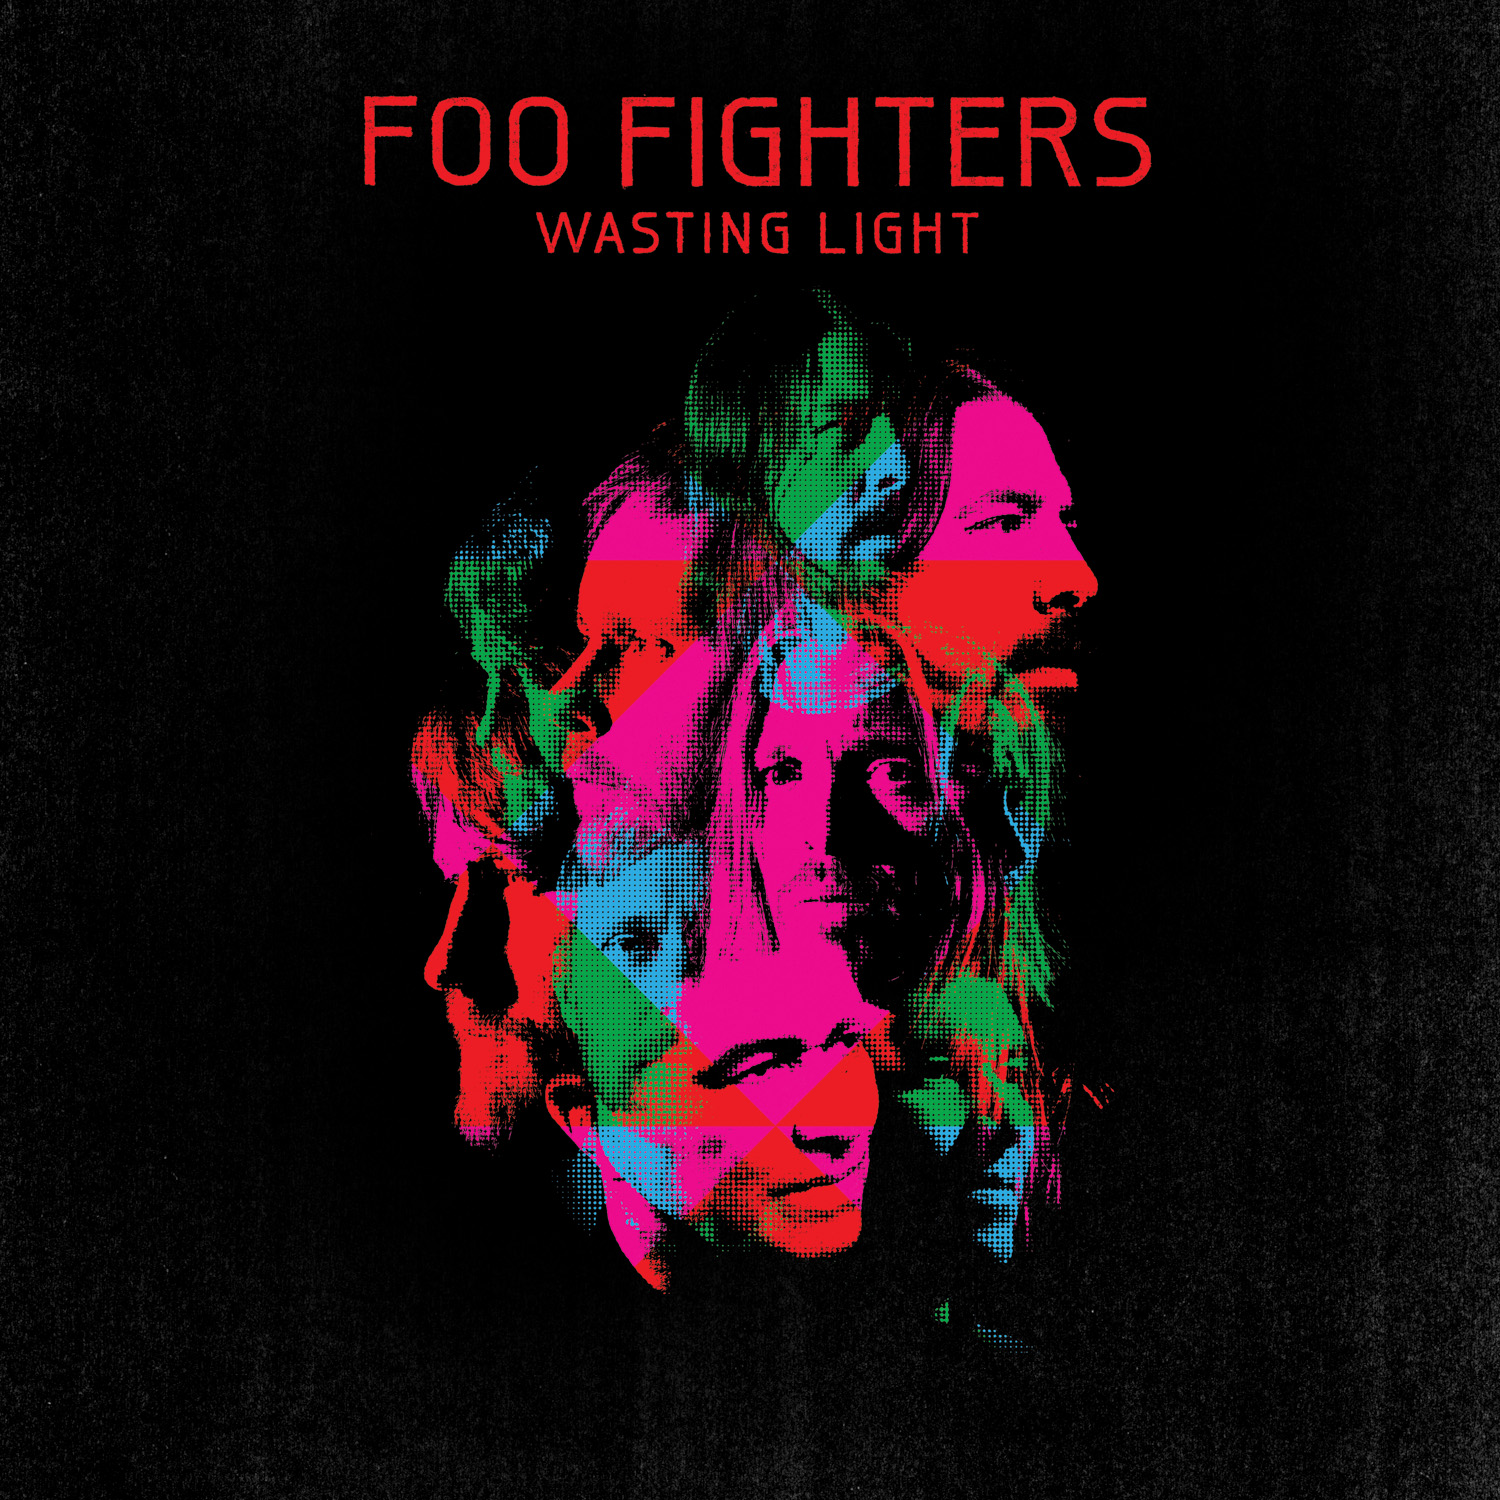 Wasting Light  is a back-to-basics album for the band. Back-to-basics, though, in their terms.